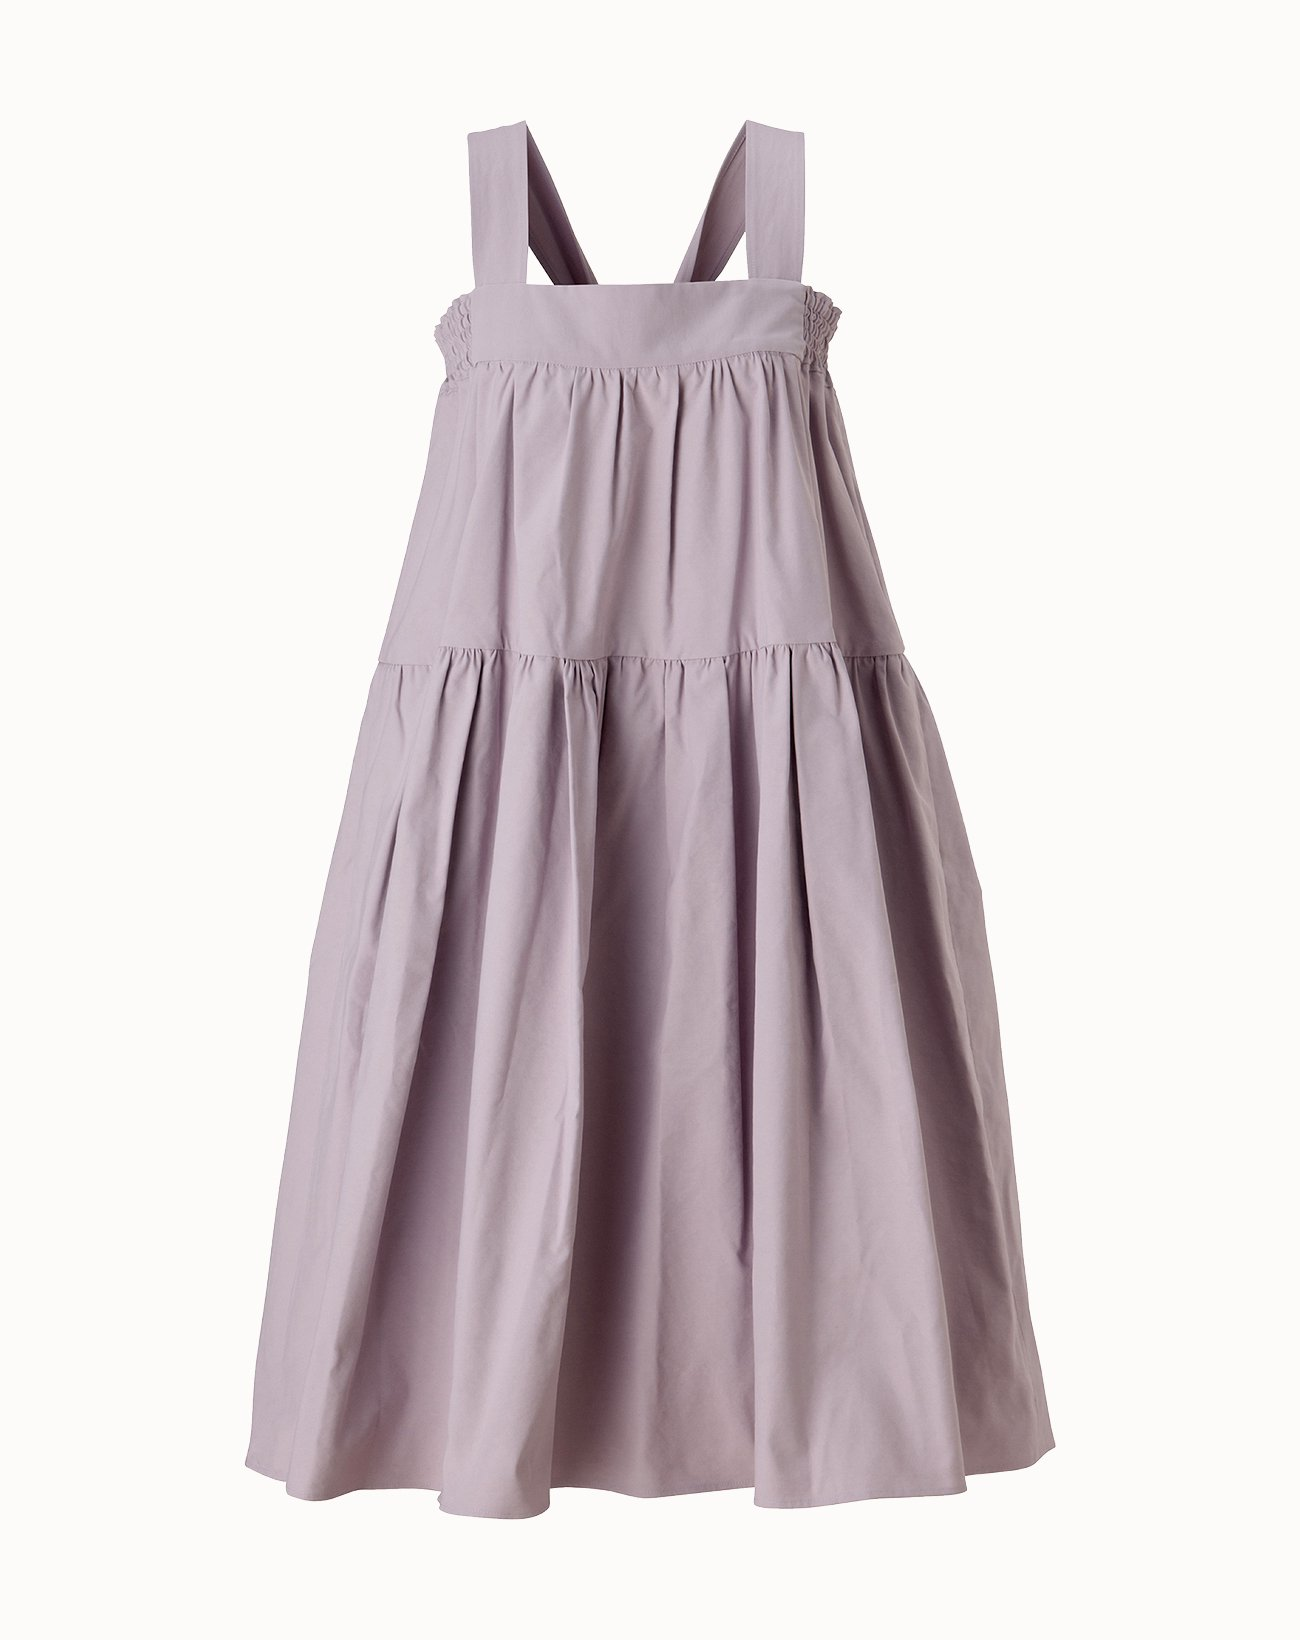 leur logette - Vintage Twill Dress - Lavender